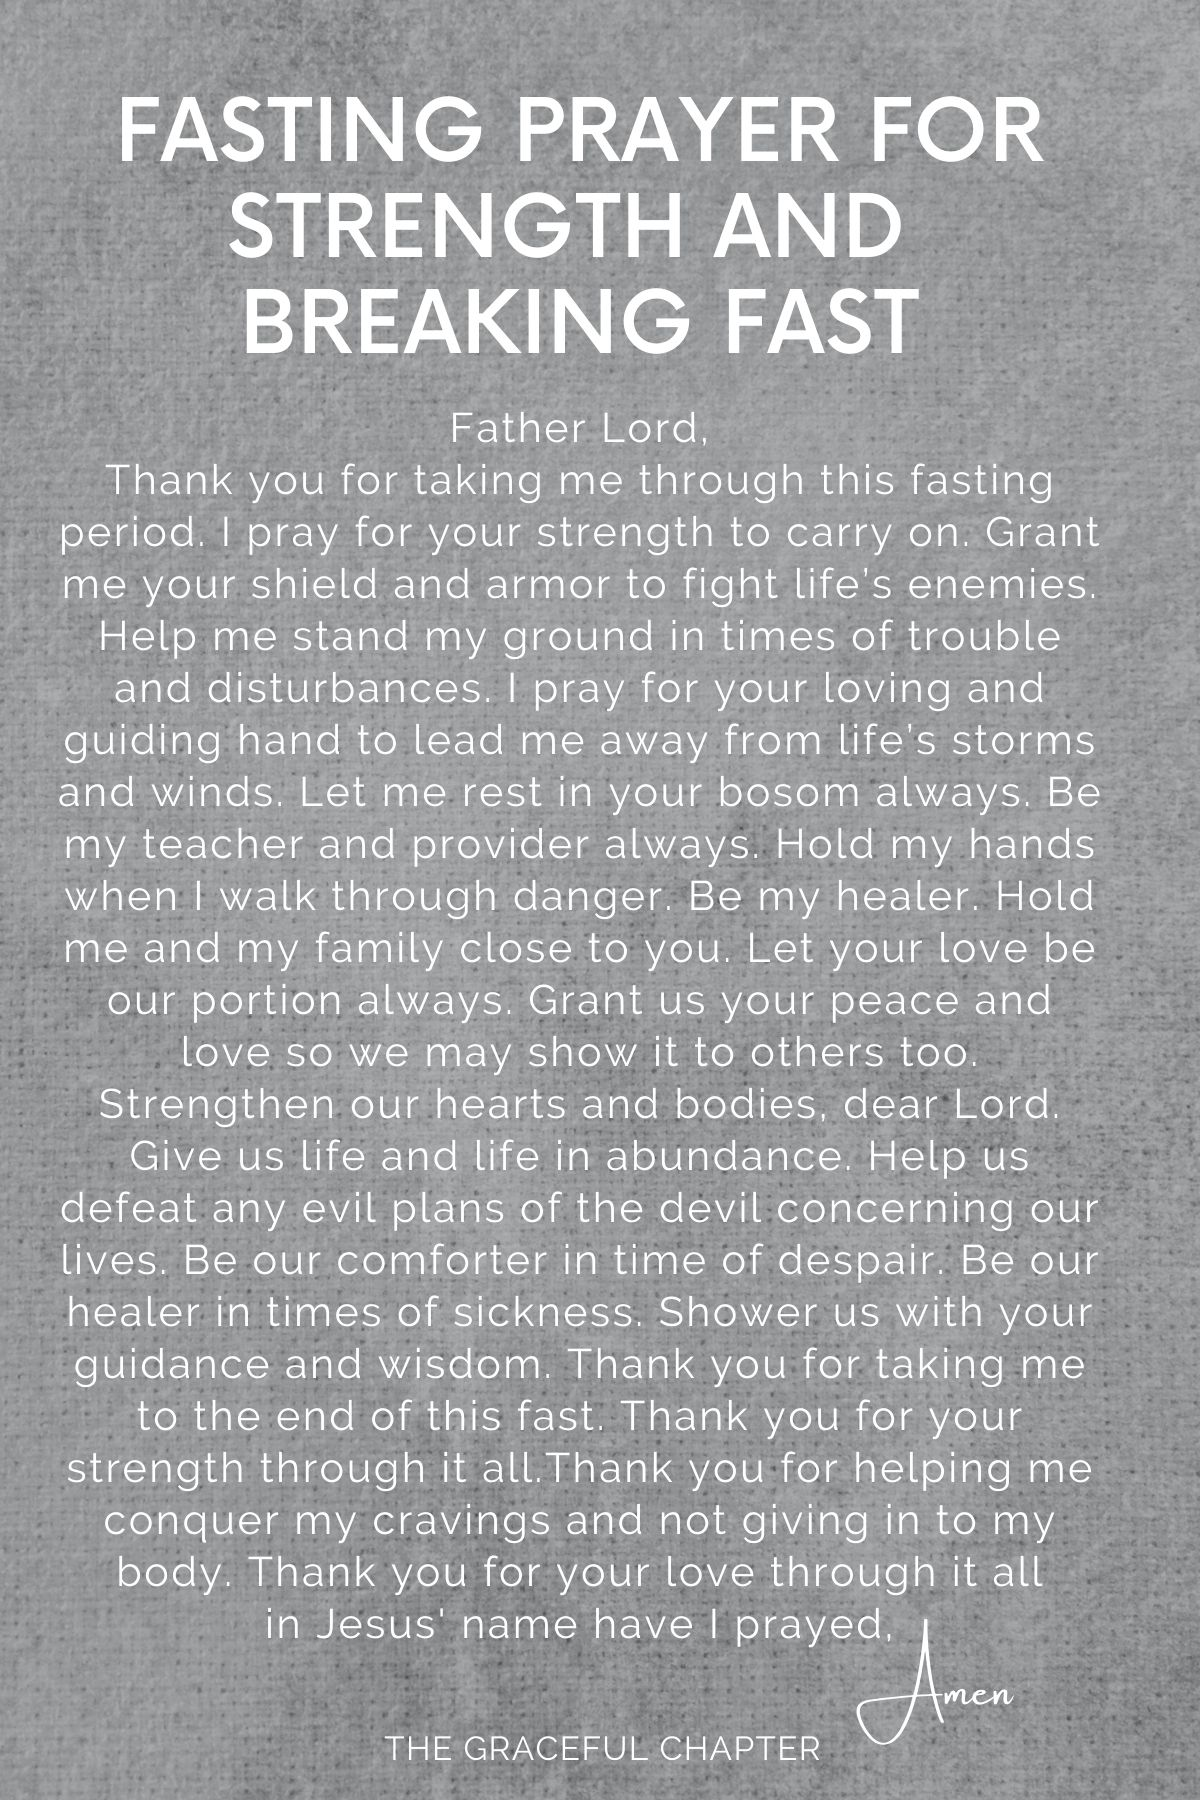 Fasting prayer for strength and breaking fast